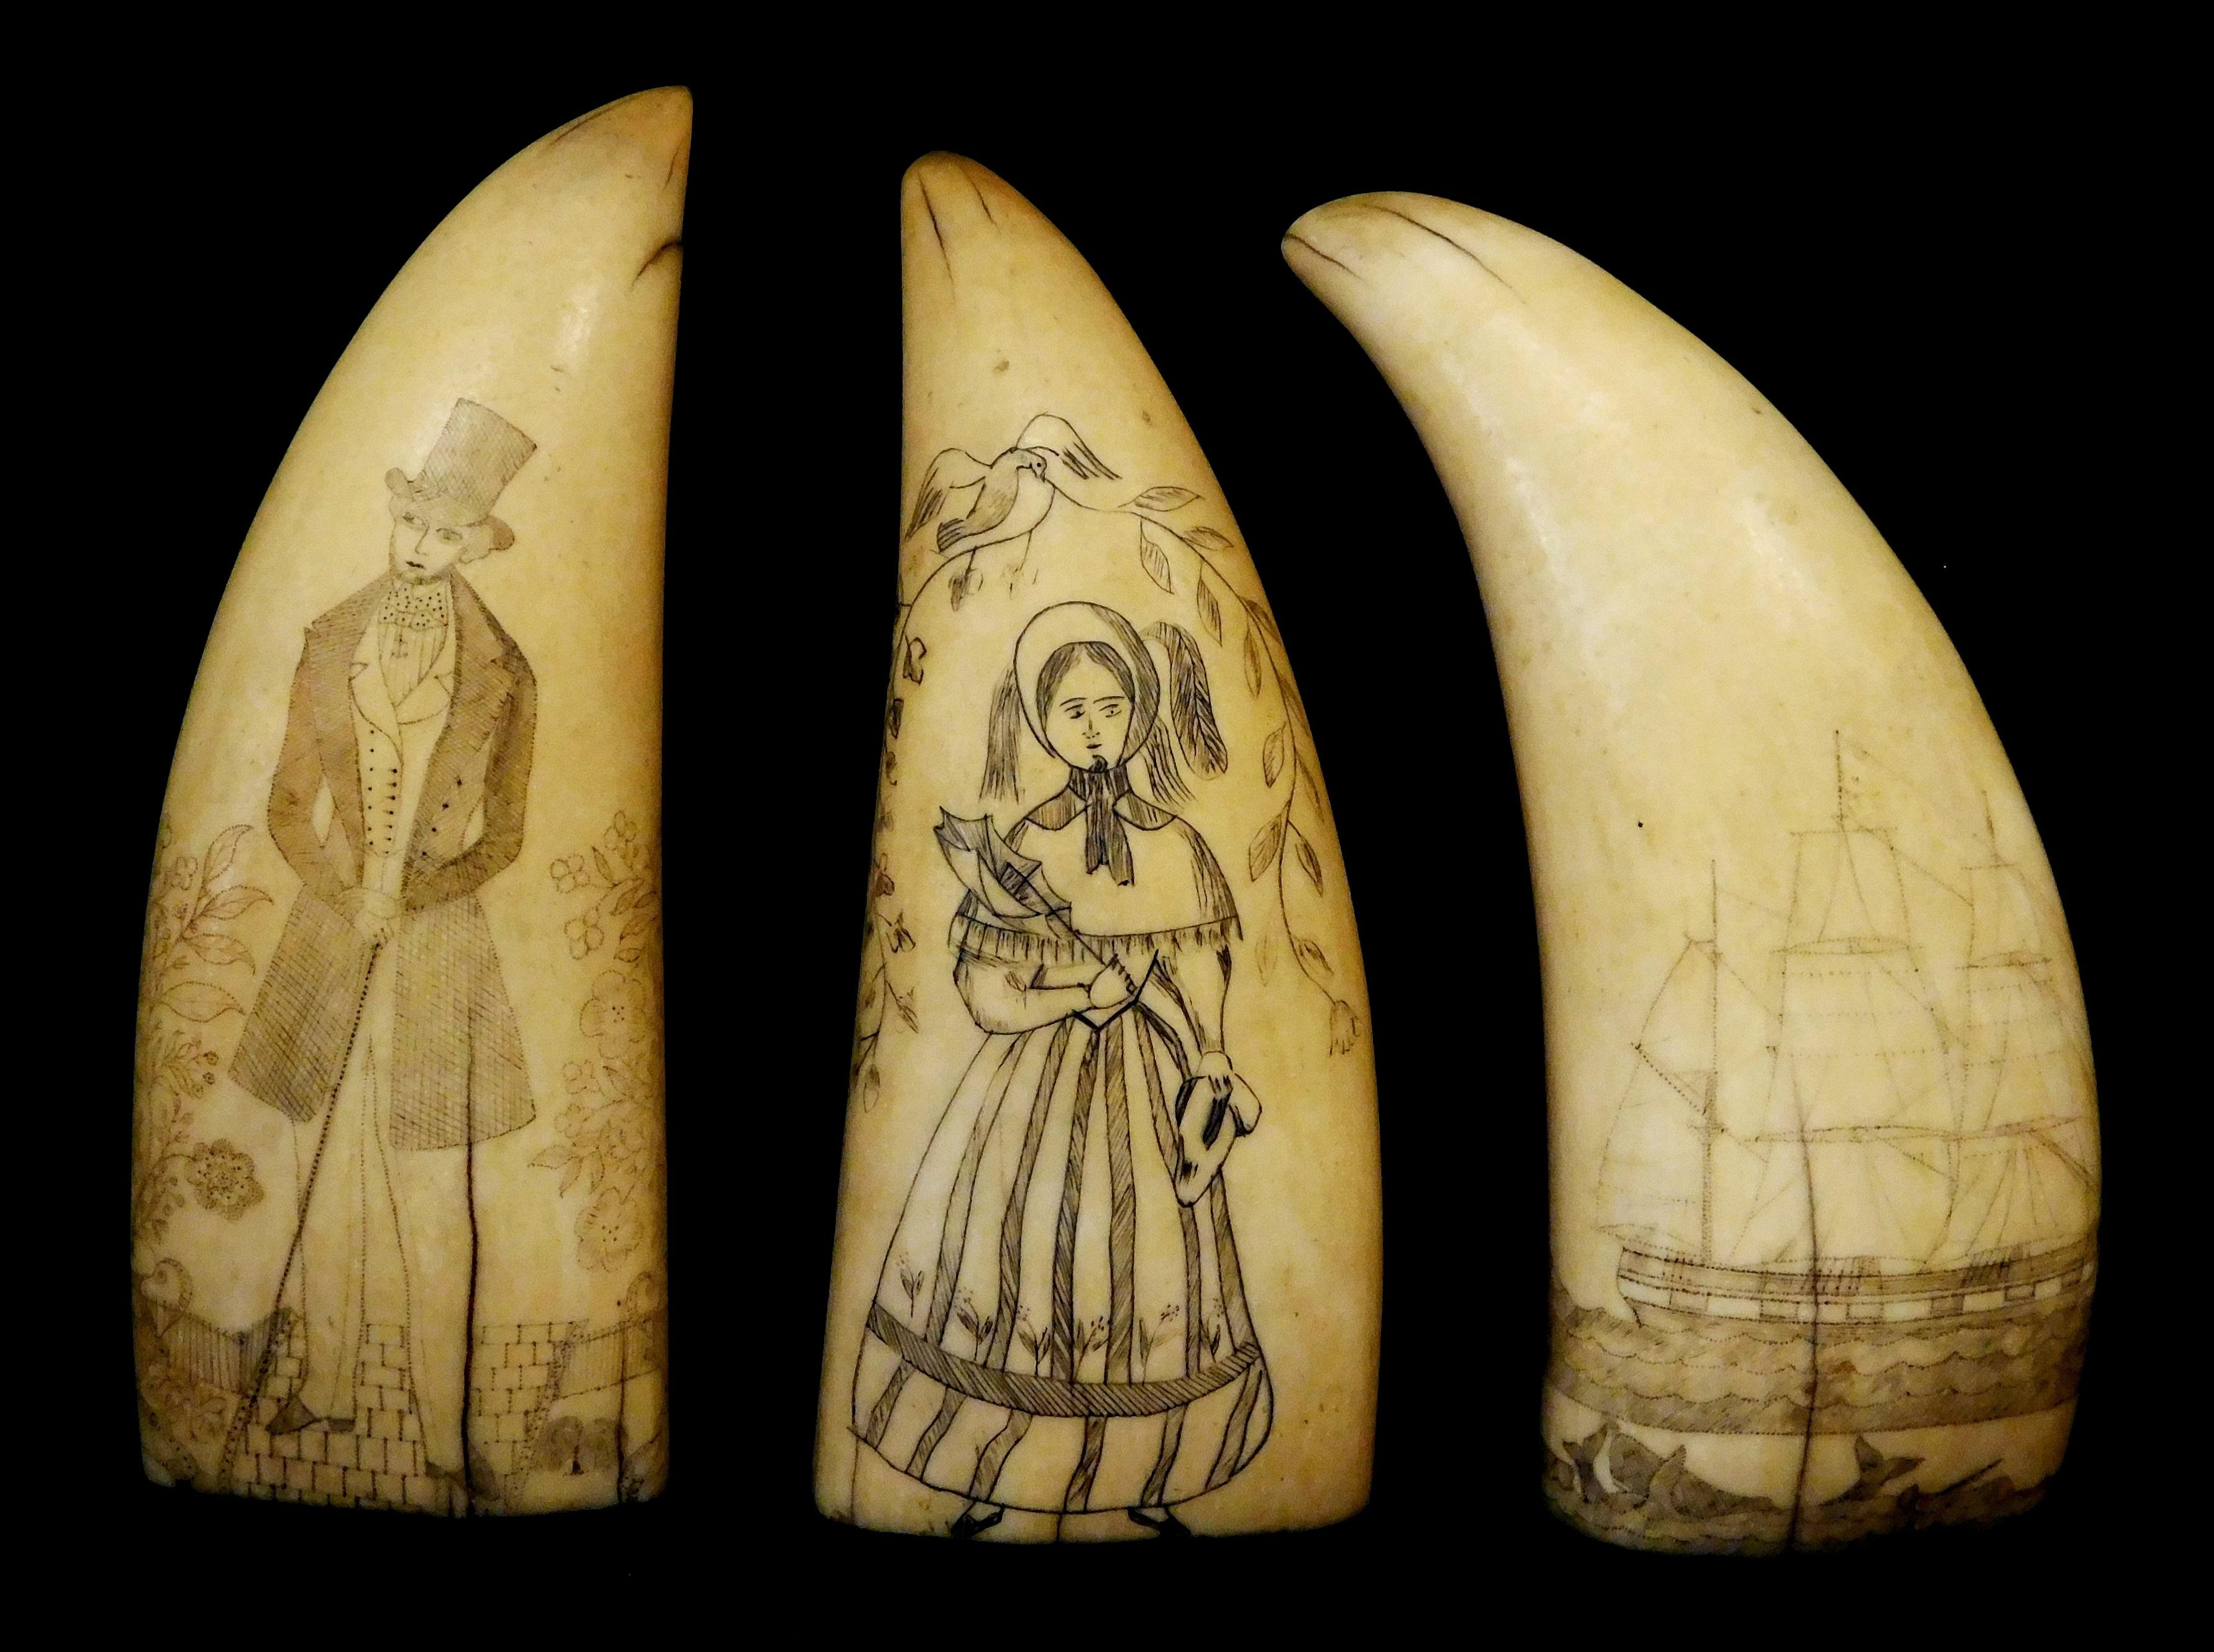 Three scrimshaw decorated sperm whale teeth, featuring a man, woman, and whaling scene with boat and many whales with accents of red...